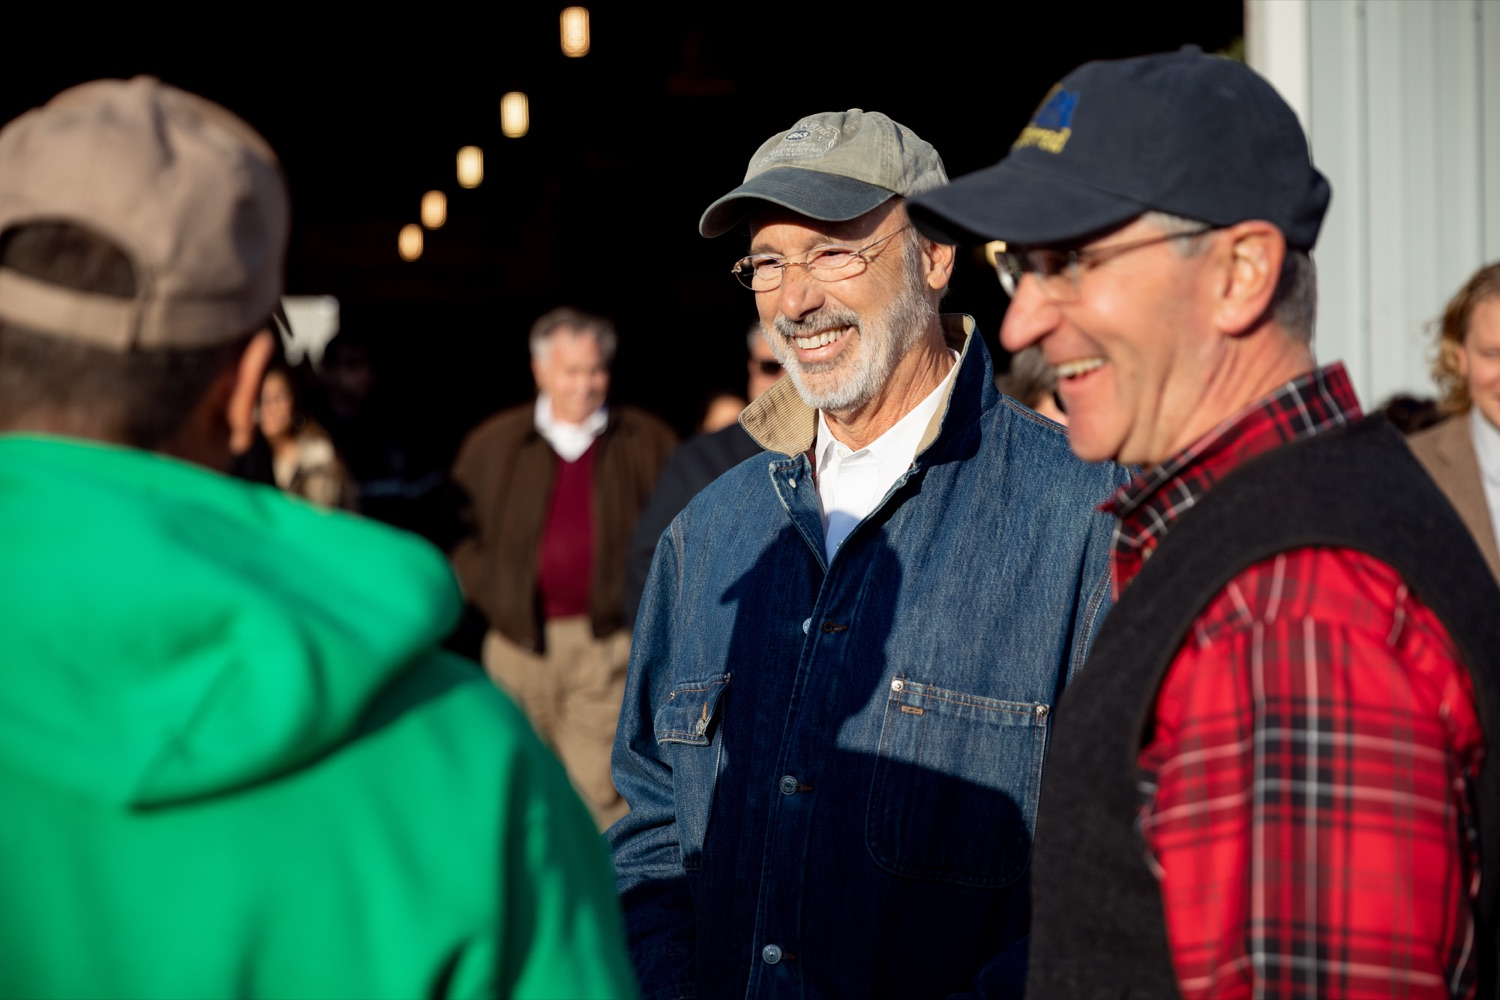 "<a href=""http://filesource.abacast.com/commonwealthofpa/photo/17615_GOV_AGRIC_Christmas_Trees_NK_002.JPG"" target=""_blank"">⇣ Download Photo<br></a>Pennsylvania Governor Tom Wolf, center, Pennsylvania Agriculture Secretary Russell Redding laugh together on Monday, November 25, 2019."